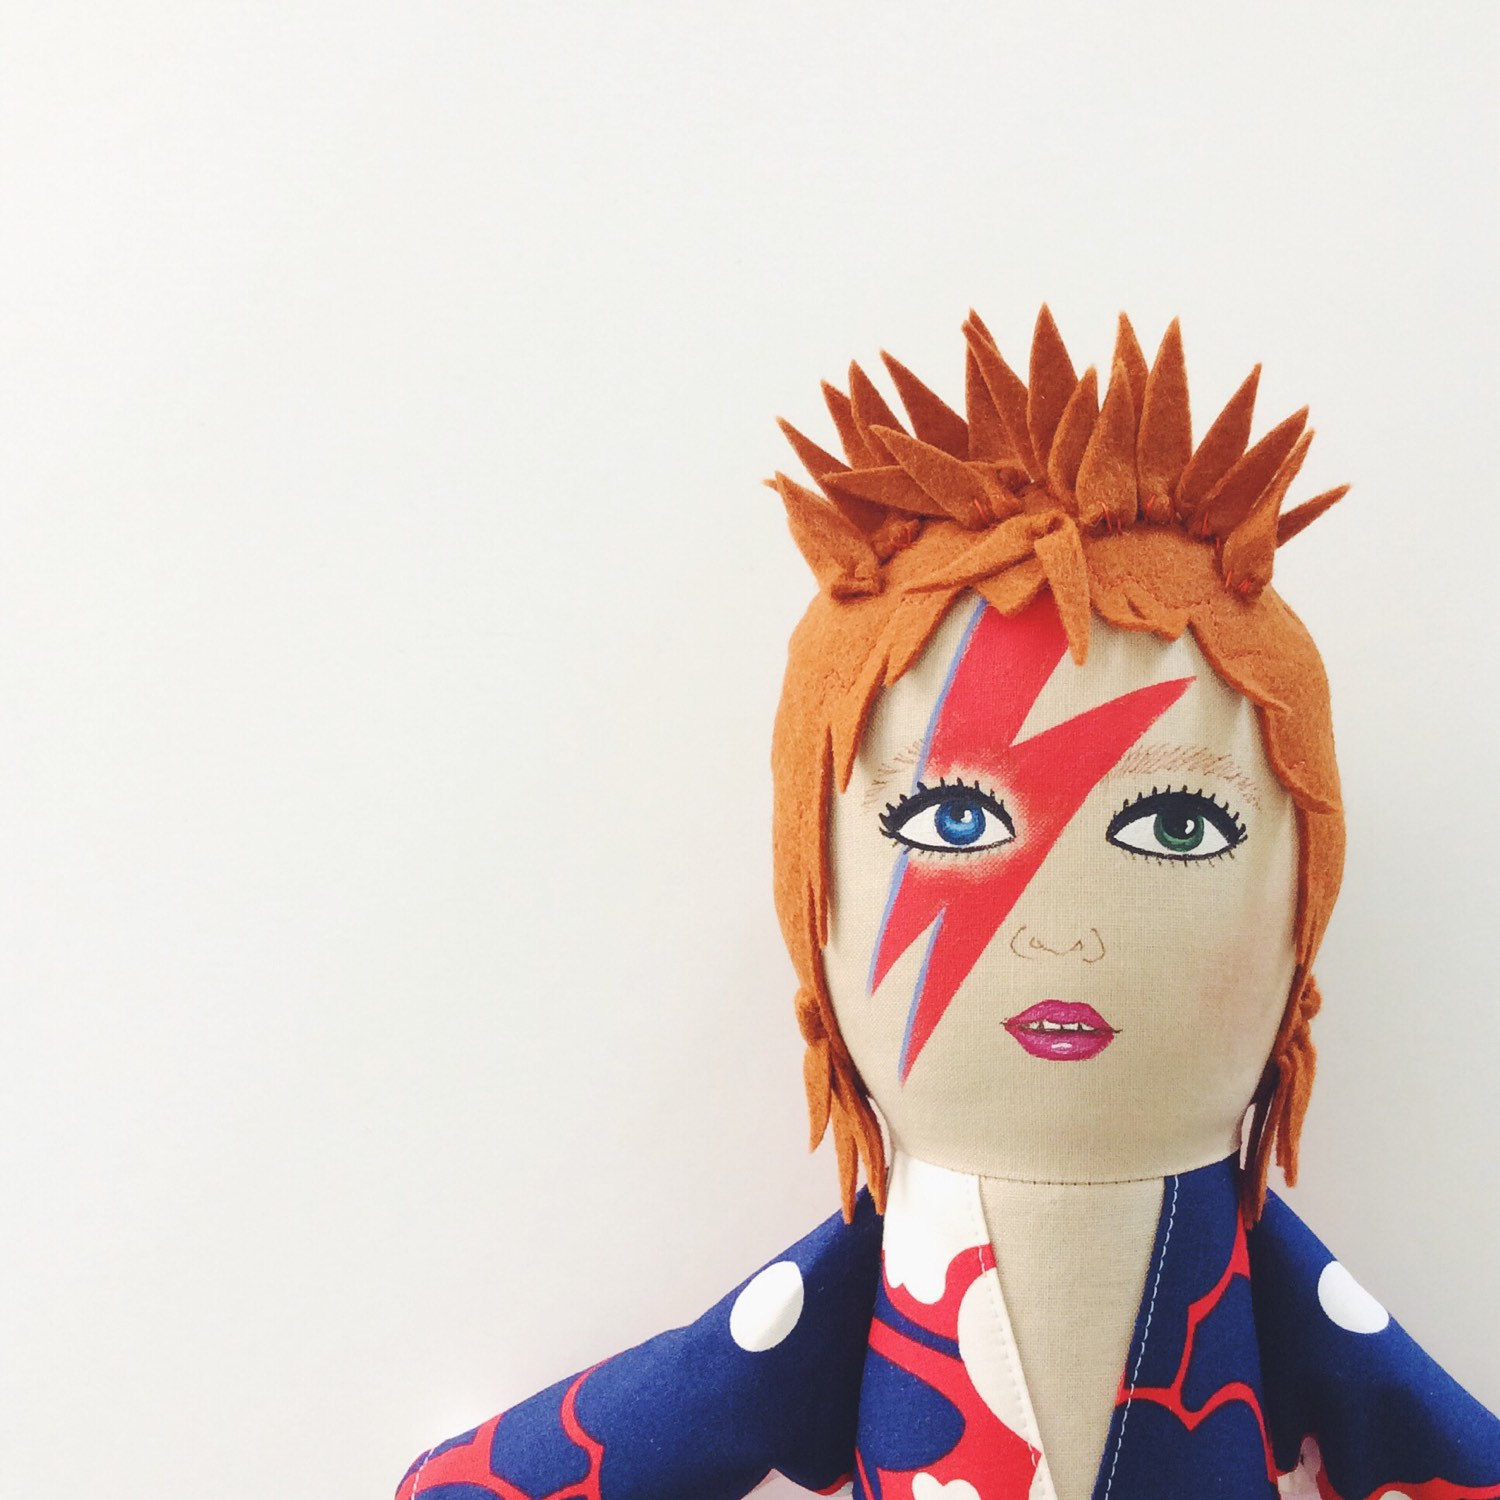 David Bowie Doll